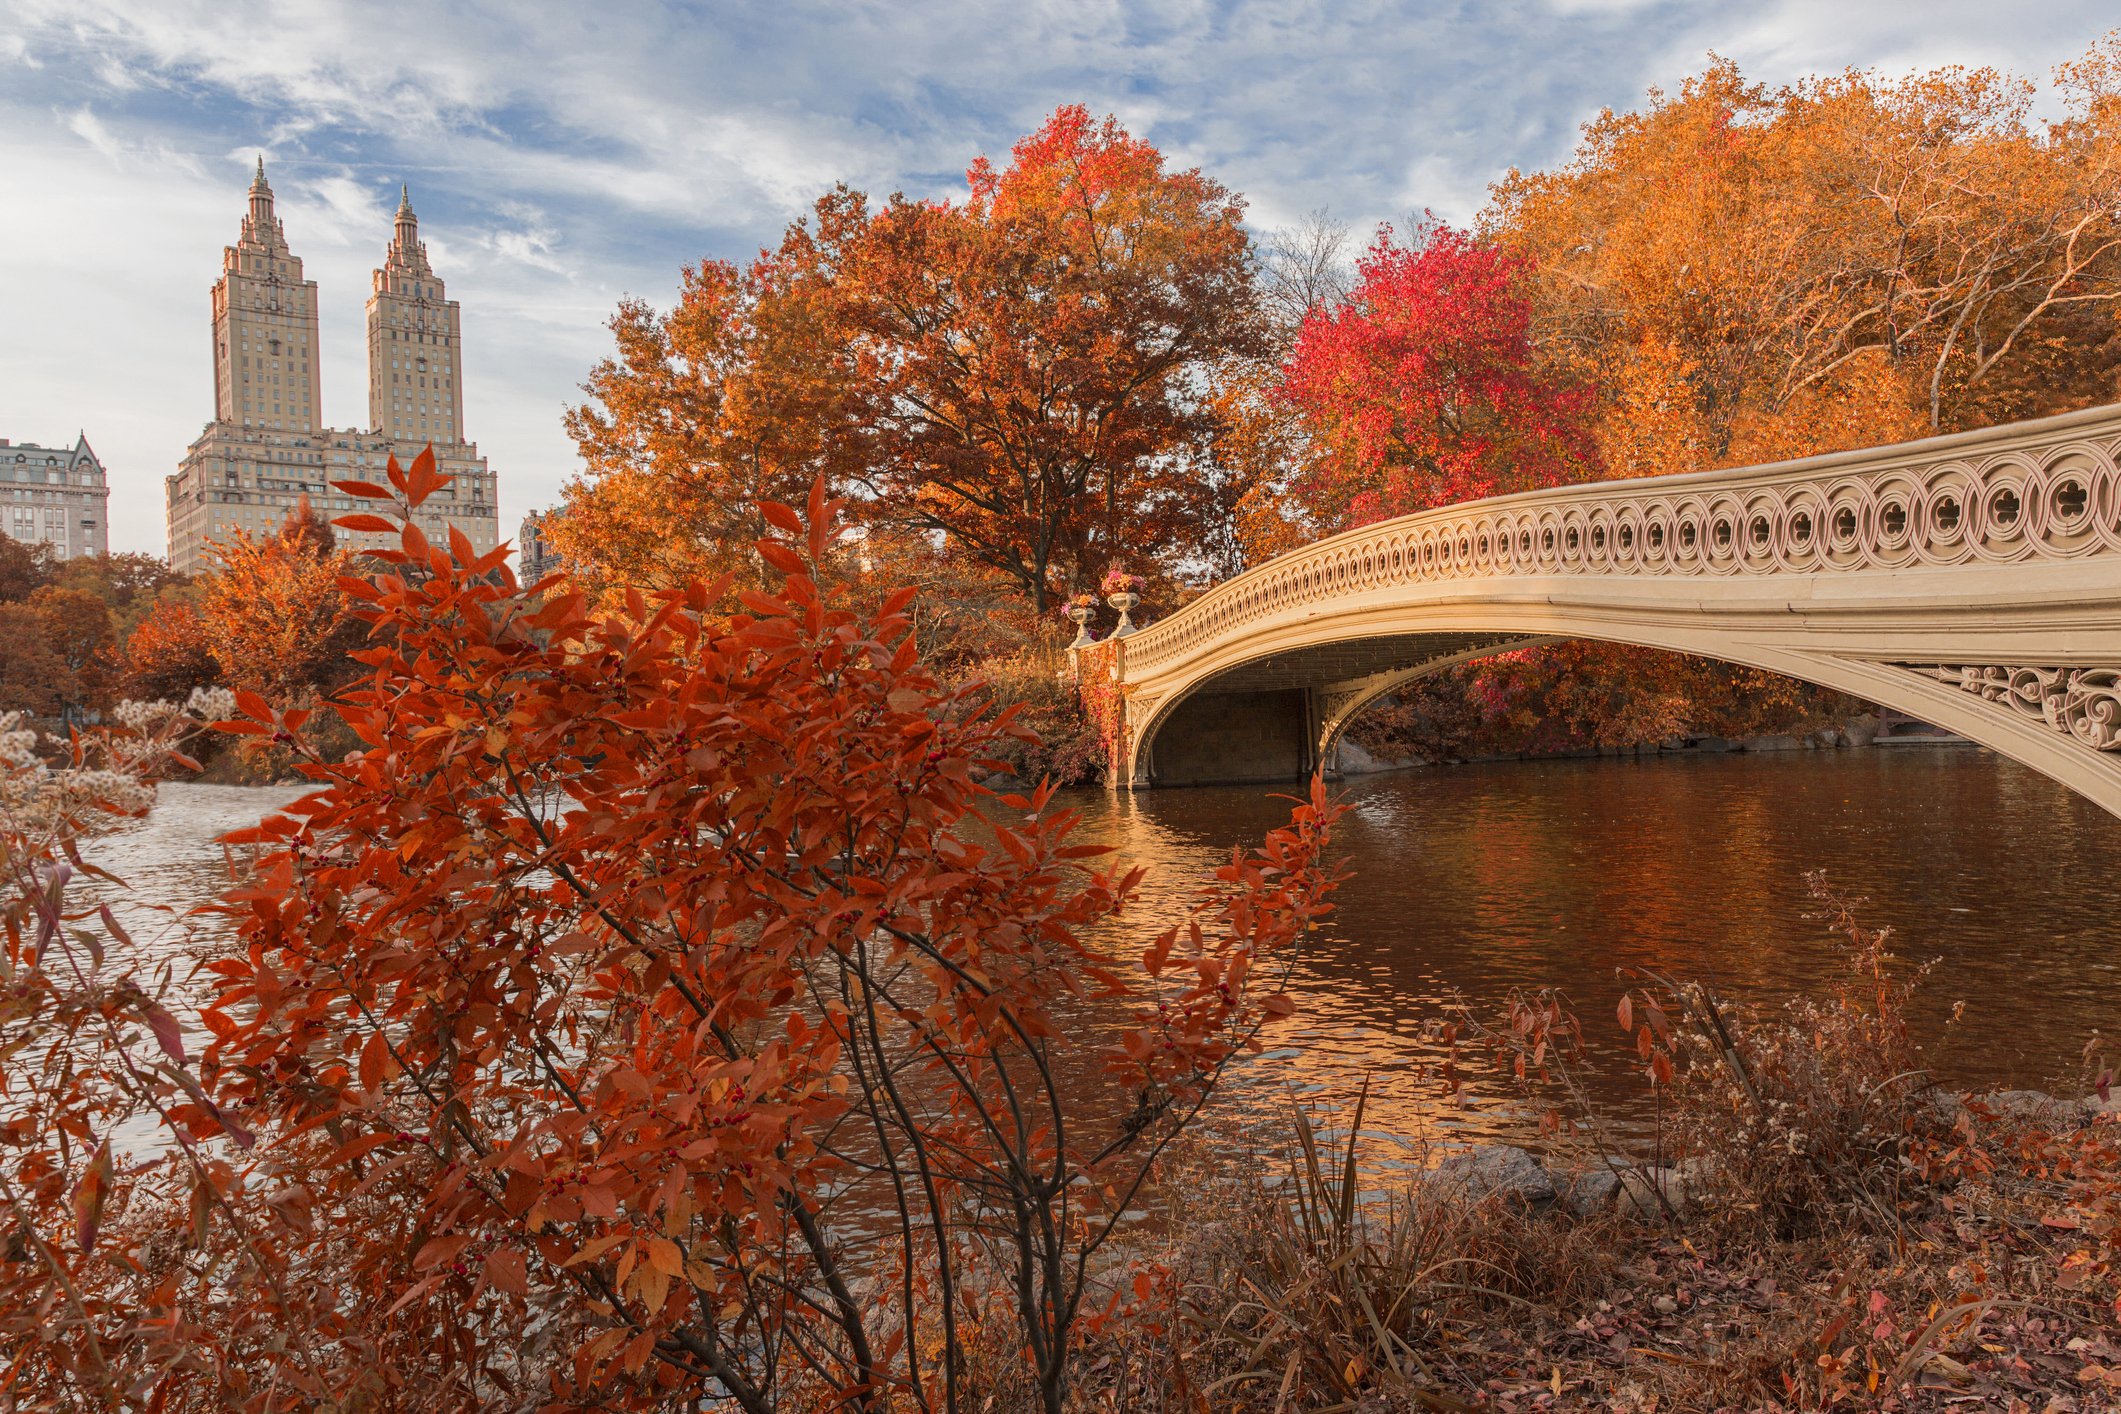 Bow Bridge in Central Park at New York City during autumn